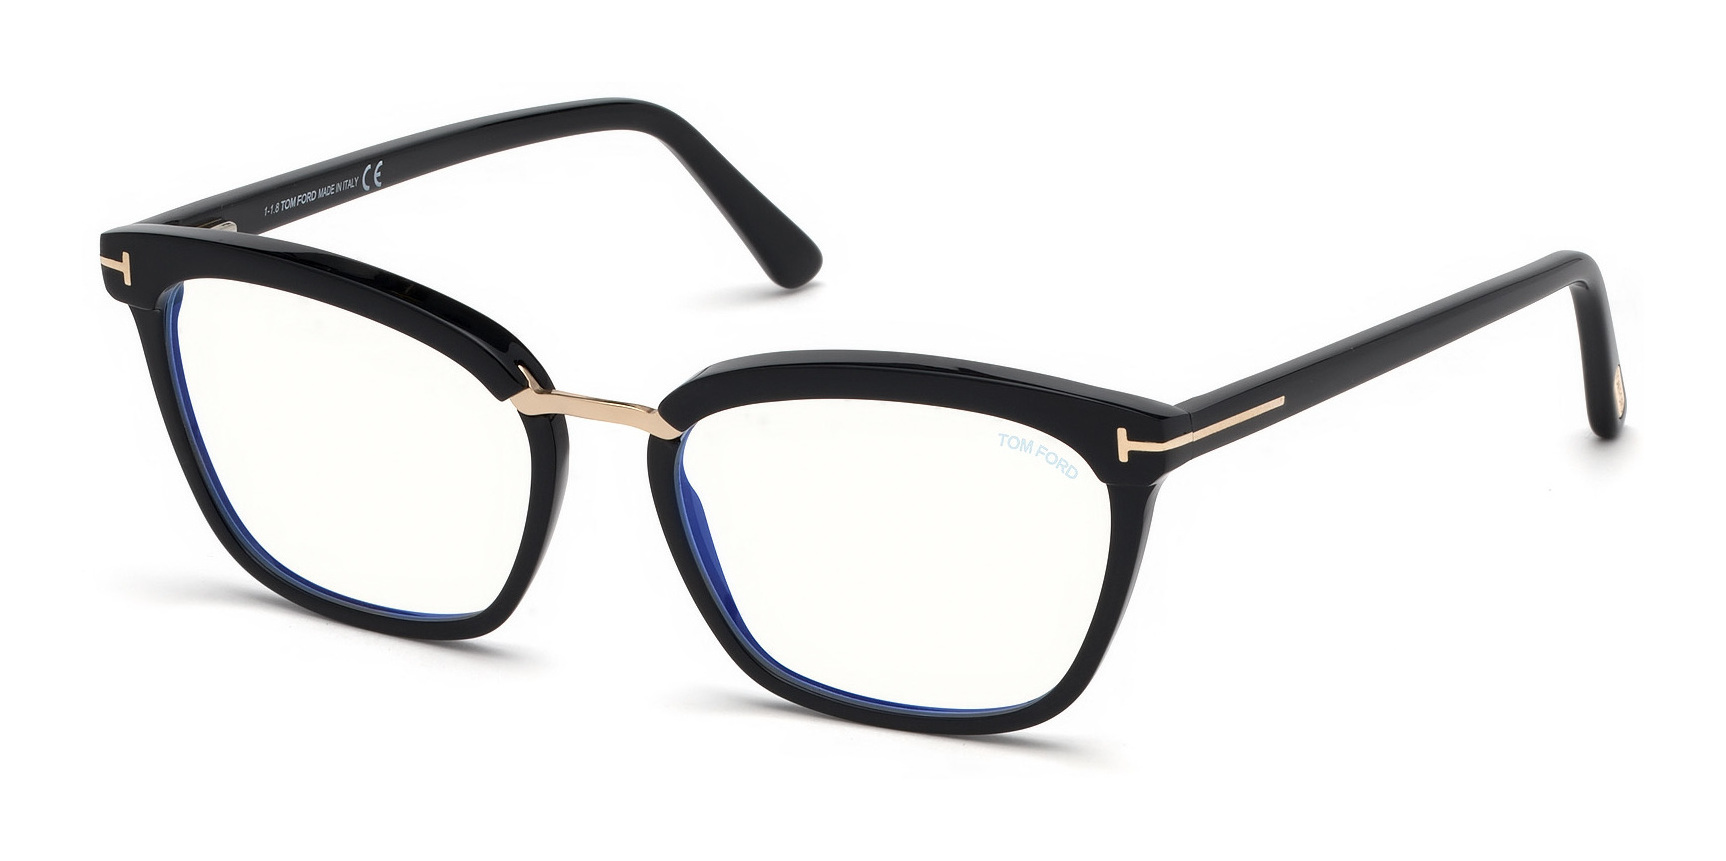 Tom Ford FT5550-B